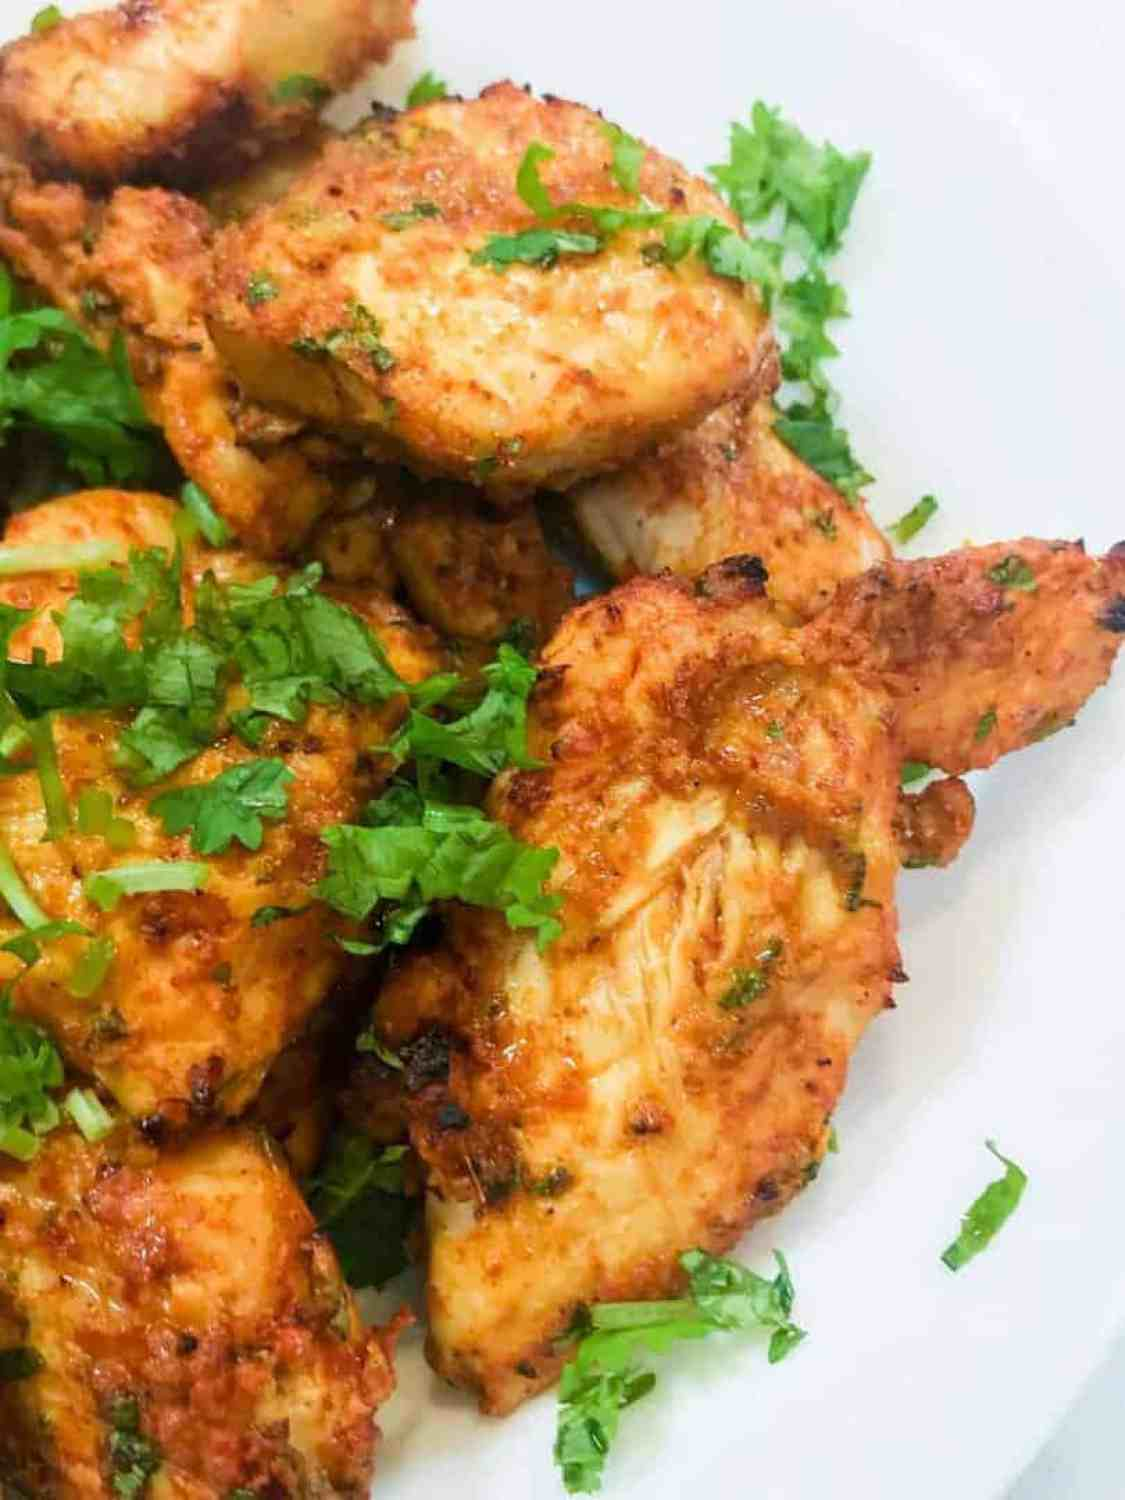 Make Tandoori chicken in your air fryer with just a yogurt-based marinade. A flavor-packed keto, low carb chicken recipe that is super easy to make and tastes like authentic tandoori chicken. Best way to make restaurant-style tandoori chicken at home.